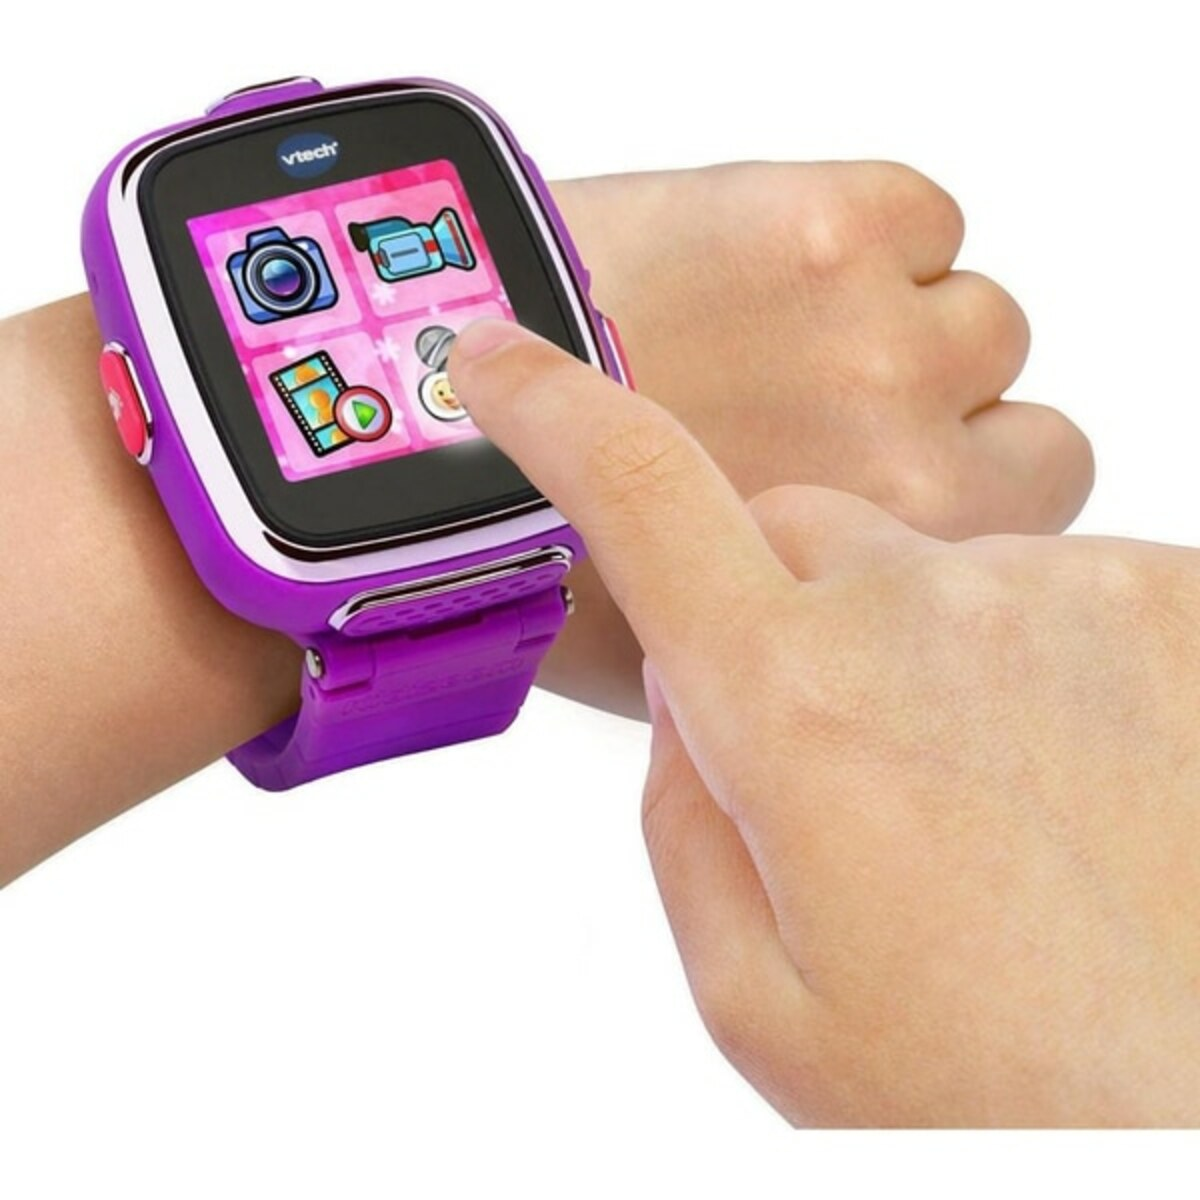 Bild 4 von VTech - Kidizoom: Smart Watch DX2, lila